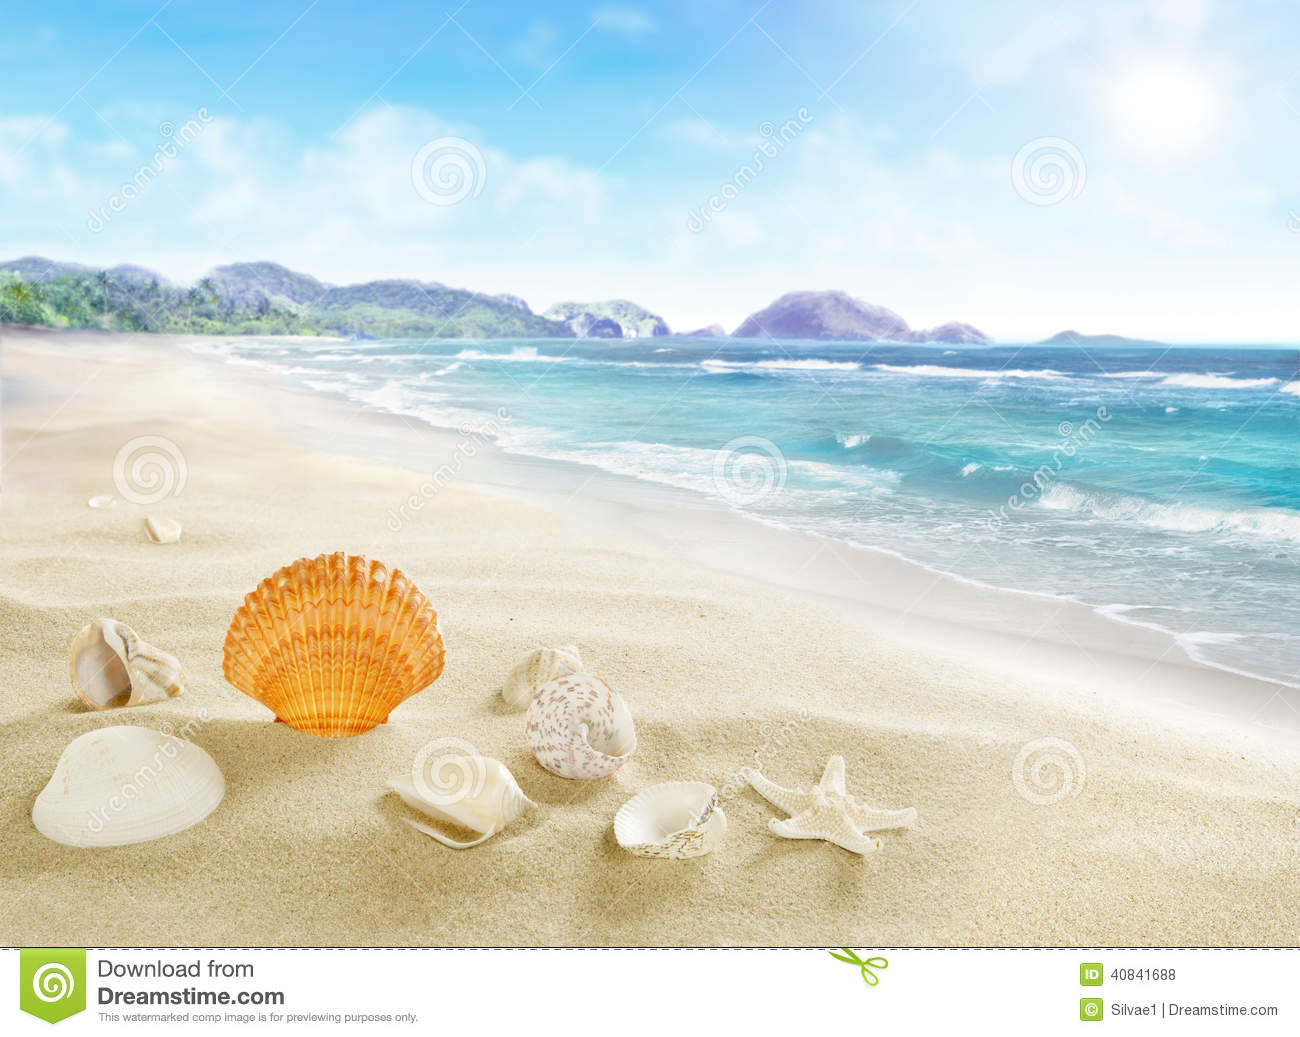 Landscape With Shells On Sandy Beach. Stock Photo - Image: 40841688